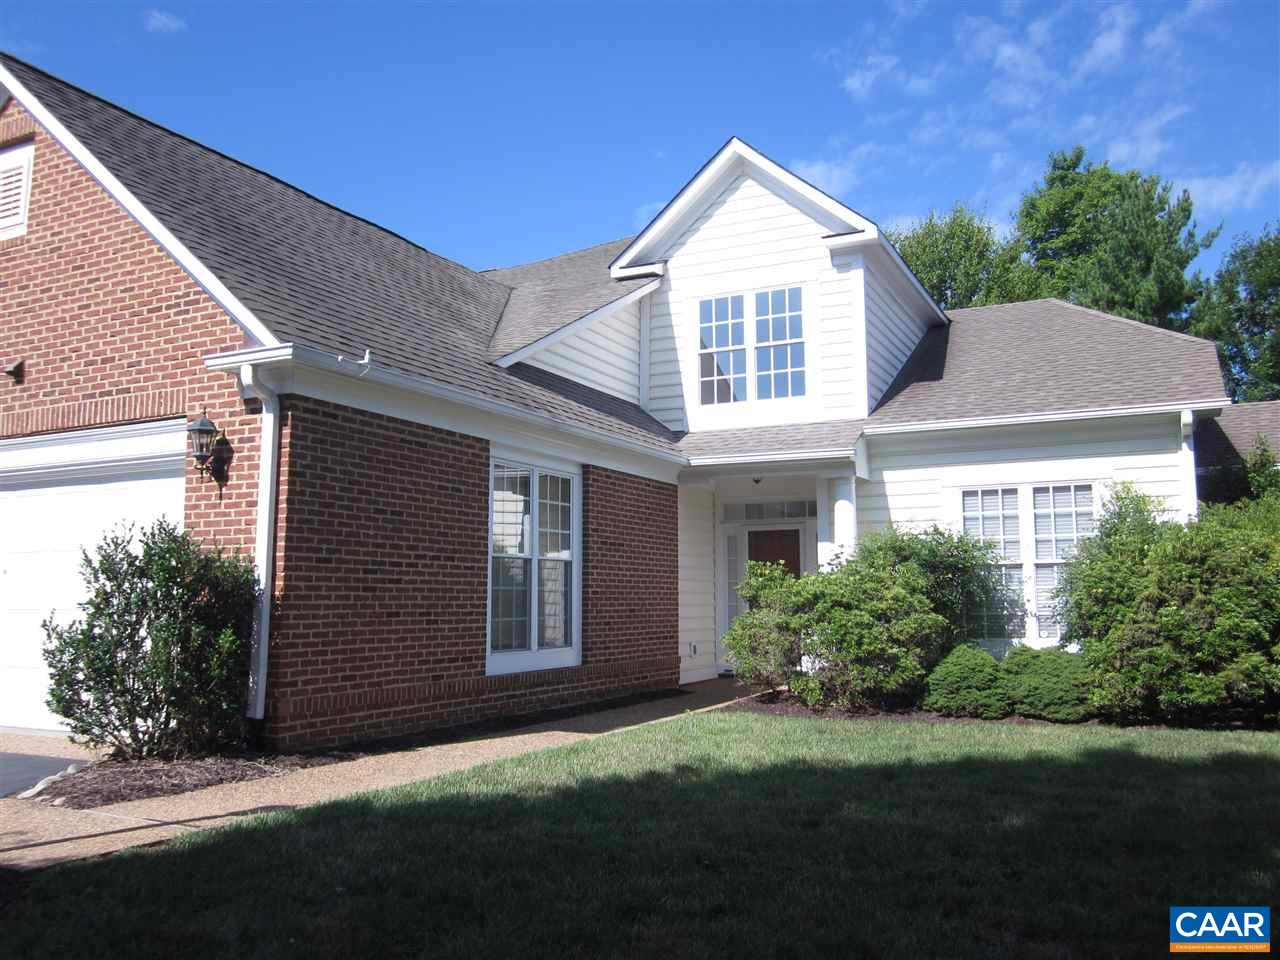 Exceptional listing in the Shepherds Ridge section of Dunlora. HOA includes lawn care, landscaping, driveway care, and membership to Dunlora's swim, tennis, plus trash service. First floor master suite, first floor office that could be bedroom, large great room, dining room, kitchen, breakfast nook, laundry room with tub sink, half bath, and two car garage. Second floor consists of two bedrooms, full bath, large open area, and walk in attic/storage space. Gas heat, gas hot water, and central air.Yard has irrigation system. Light and airy inside with many windows. Lots of closets and extra storage space. Wonderful condition. Available immediately! Call Douglas Wood, 434-981-3299.